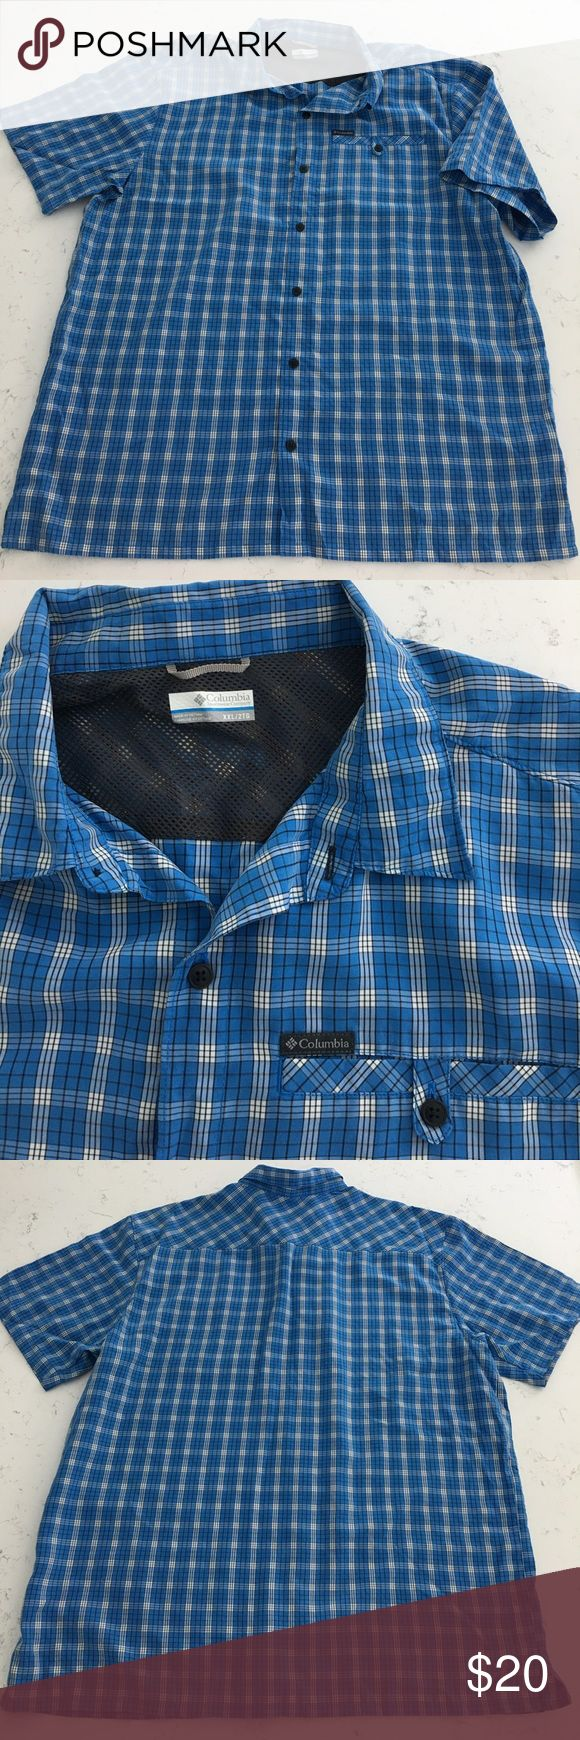 Men's Columbia Sportswear blue plaid shirt XXL Used like new. Really nice Columbia Sportswear Men's blue plaid button down short sleeve shirt. XXL This is not a cotton shirt! Its polyester.  Reasonable offers considered! Columbia Shirts Casual Button Down Shirts